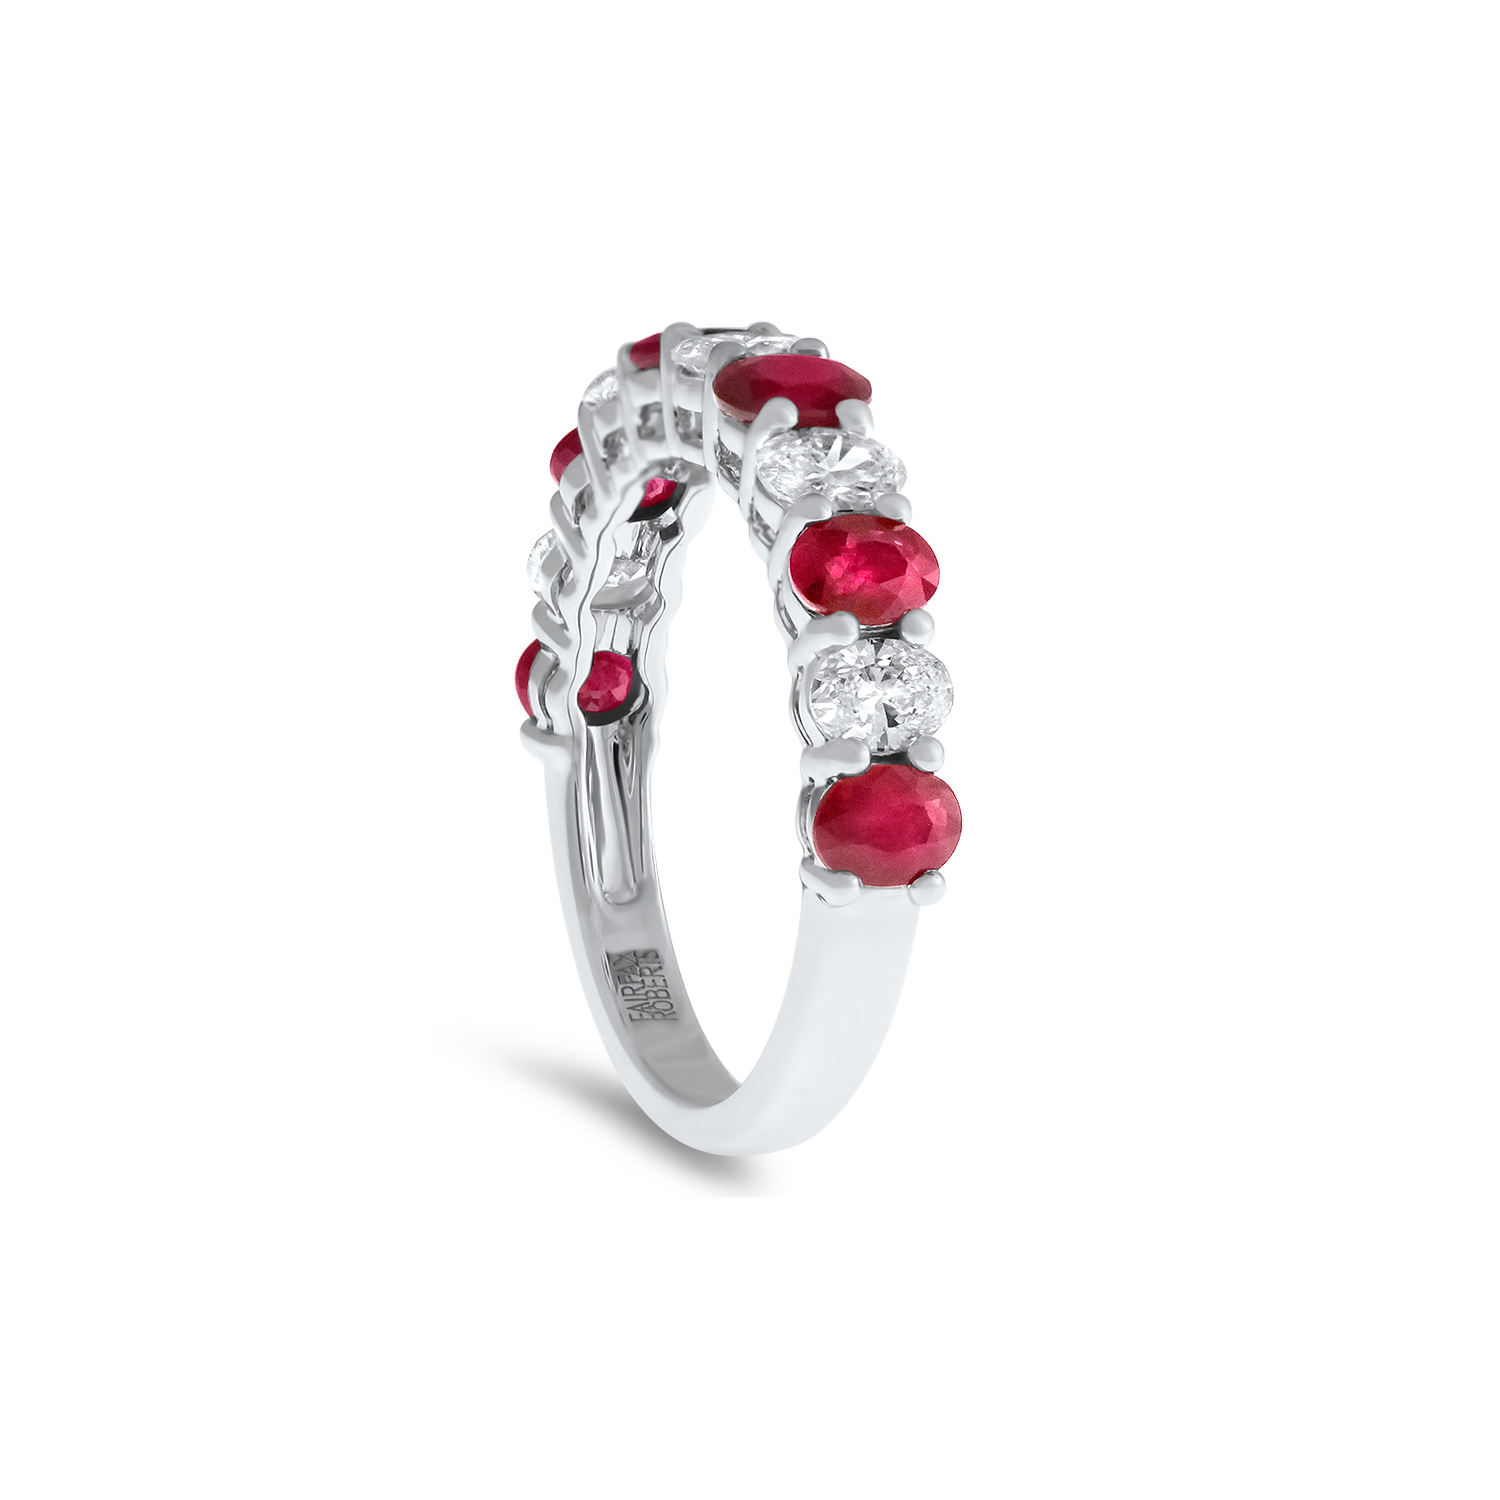 Ruby and diamond eternity band